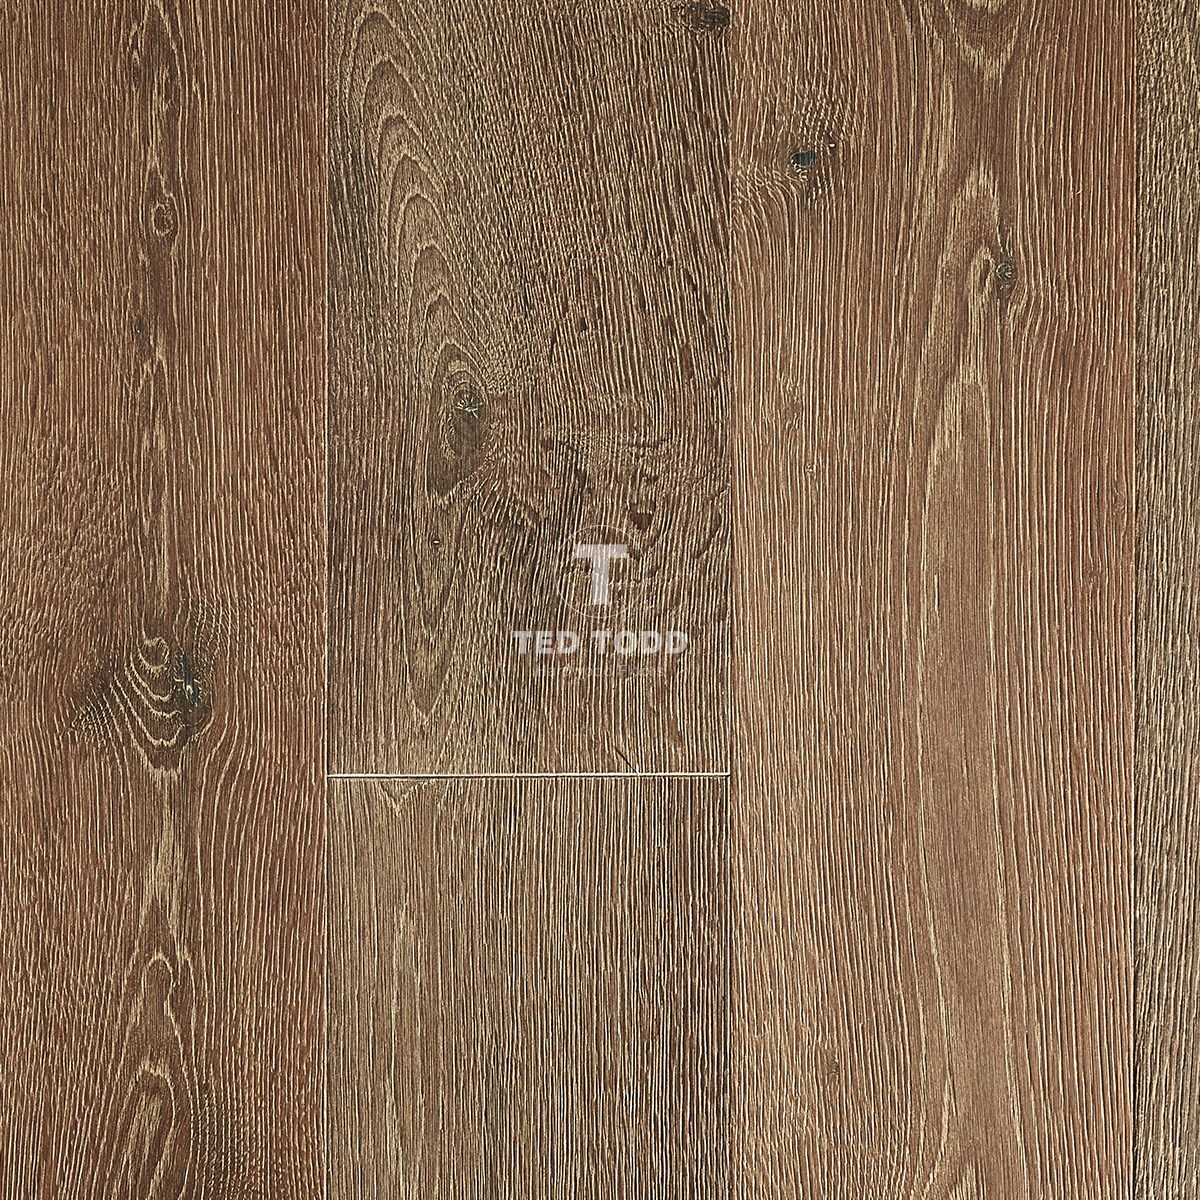 Very Impressive portraiture of Best at Flooring Products Engineered Wood Flooring Ted Todd Engineered  with #694D38 color and 1200x1200 pixels